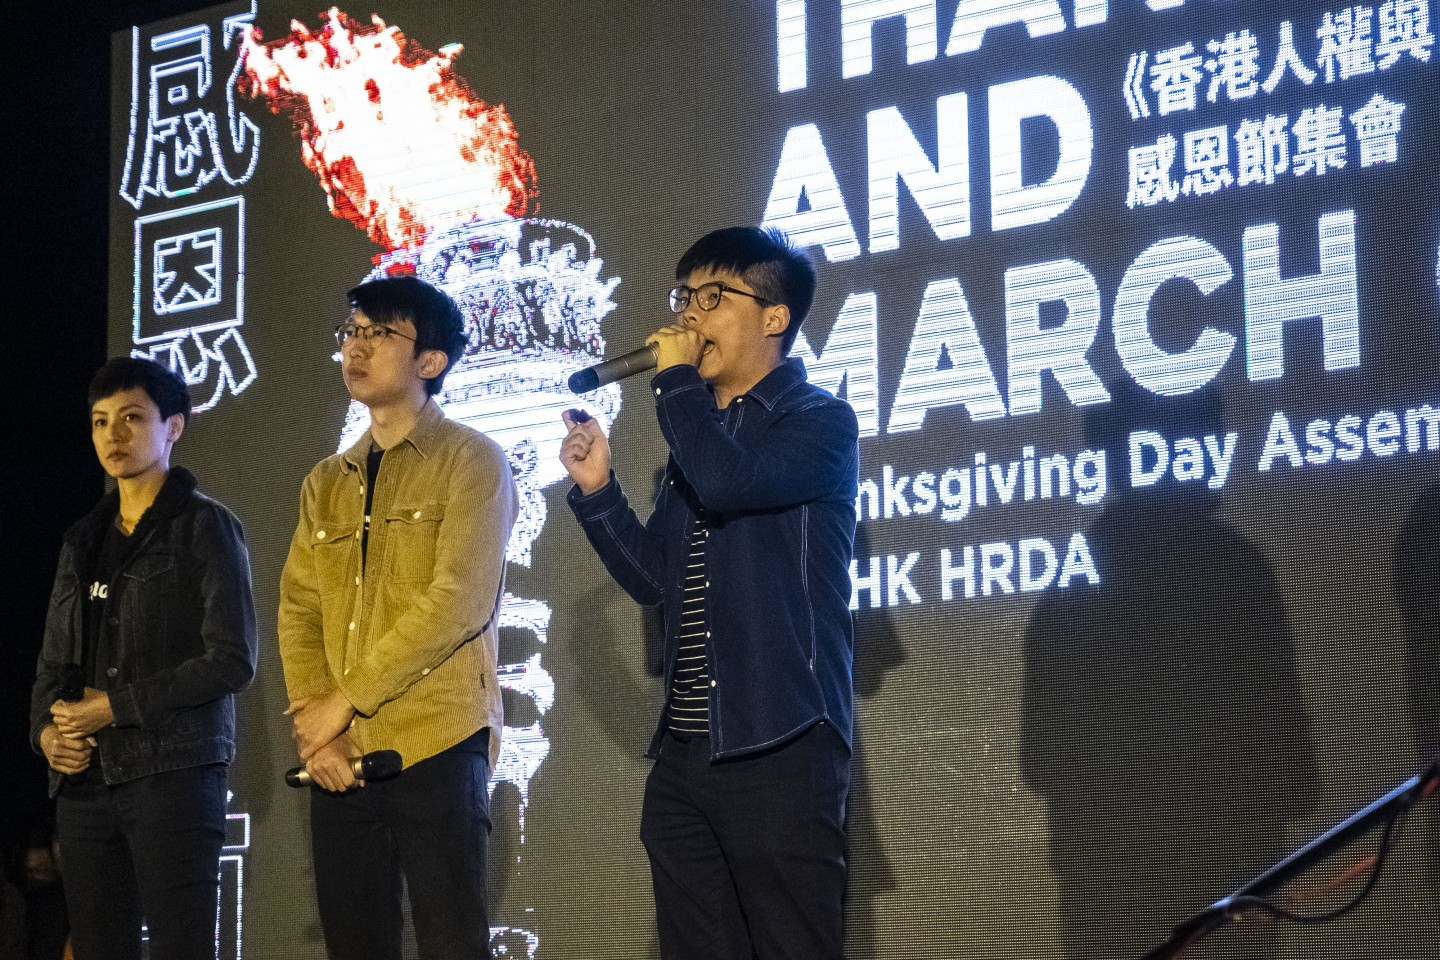 "Joshua Wong, co-founder of the Demosisto political party, delivers a speech during the ""Thanksgiving Day Assembly for Hong Kong Human Rights and Democracy Act"" at Edinburgh Place in the Central district of Hong Kong, China, on Thursday, Nov. 28, 2019. Donald Trump signed legislation expressing U.S. support for Hong Kong protesters, prompting China to threaten retaliation just as the two nations get close to signing a phase one trade deal. Photographer: Chan Long Hei/Bloomberg"